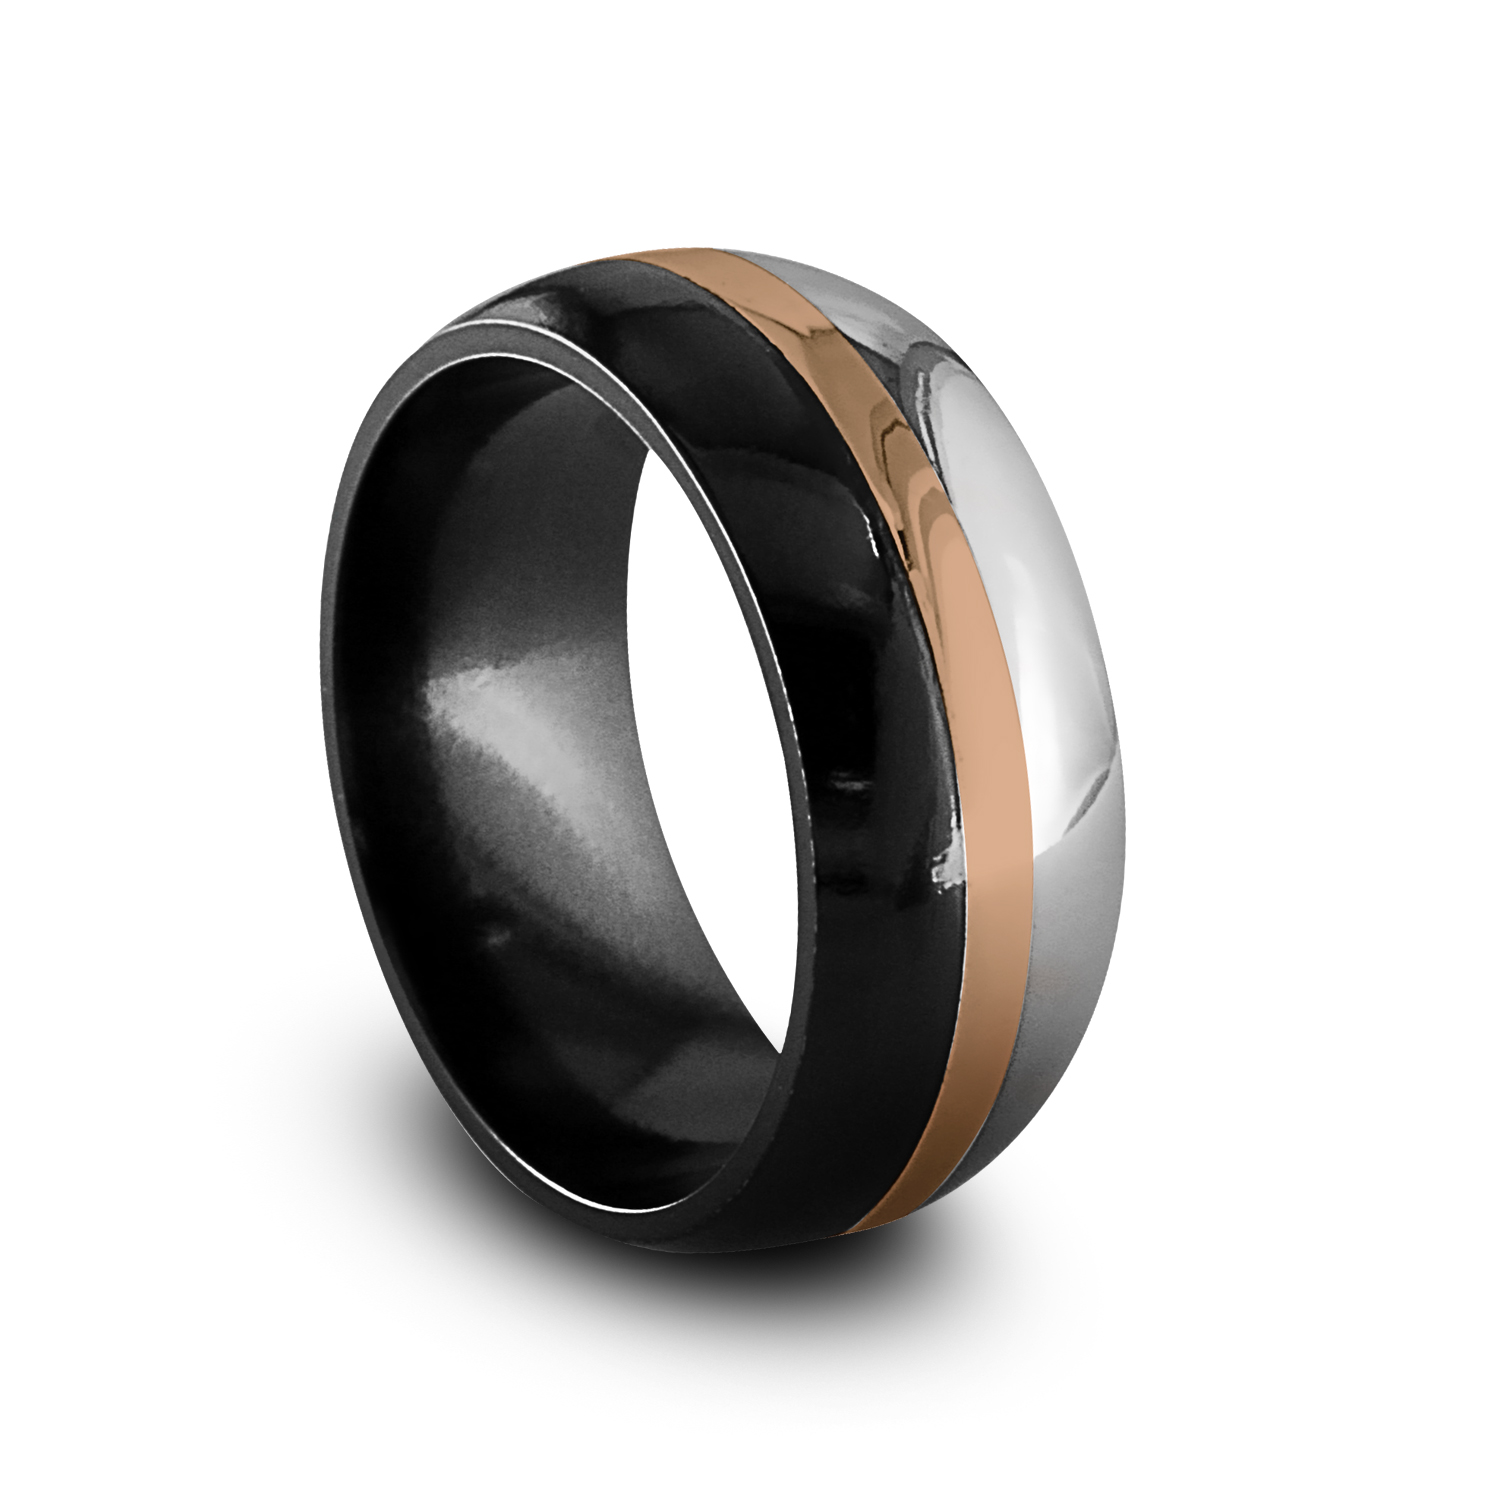 ring kinetic jewellery product jewelry mens wedding designs